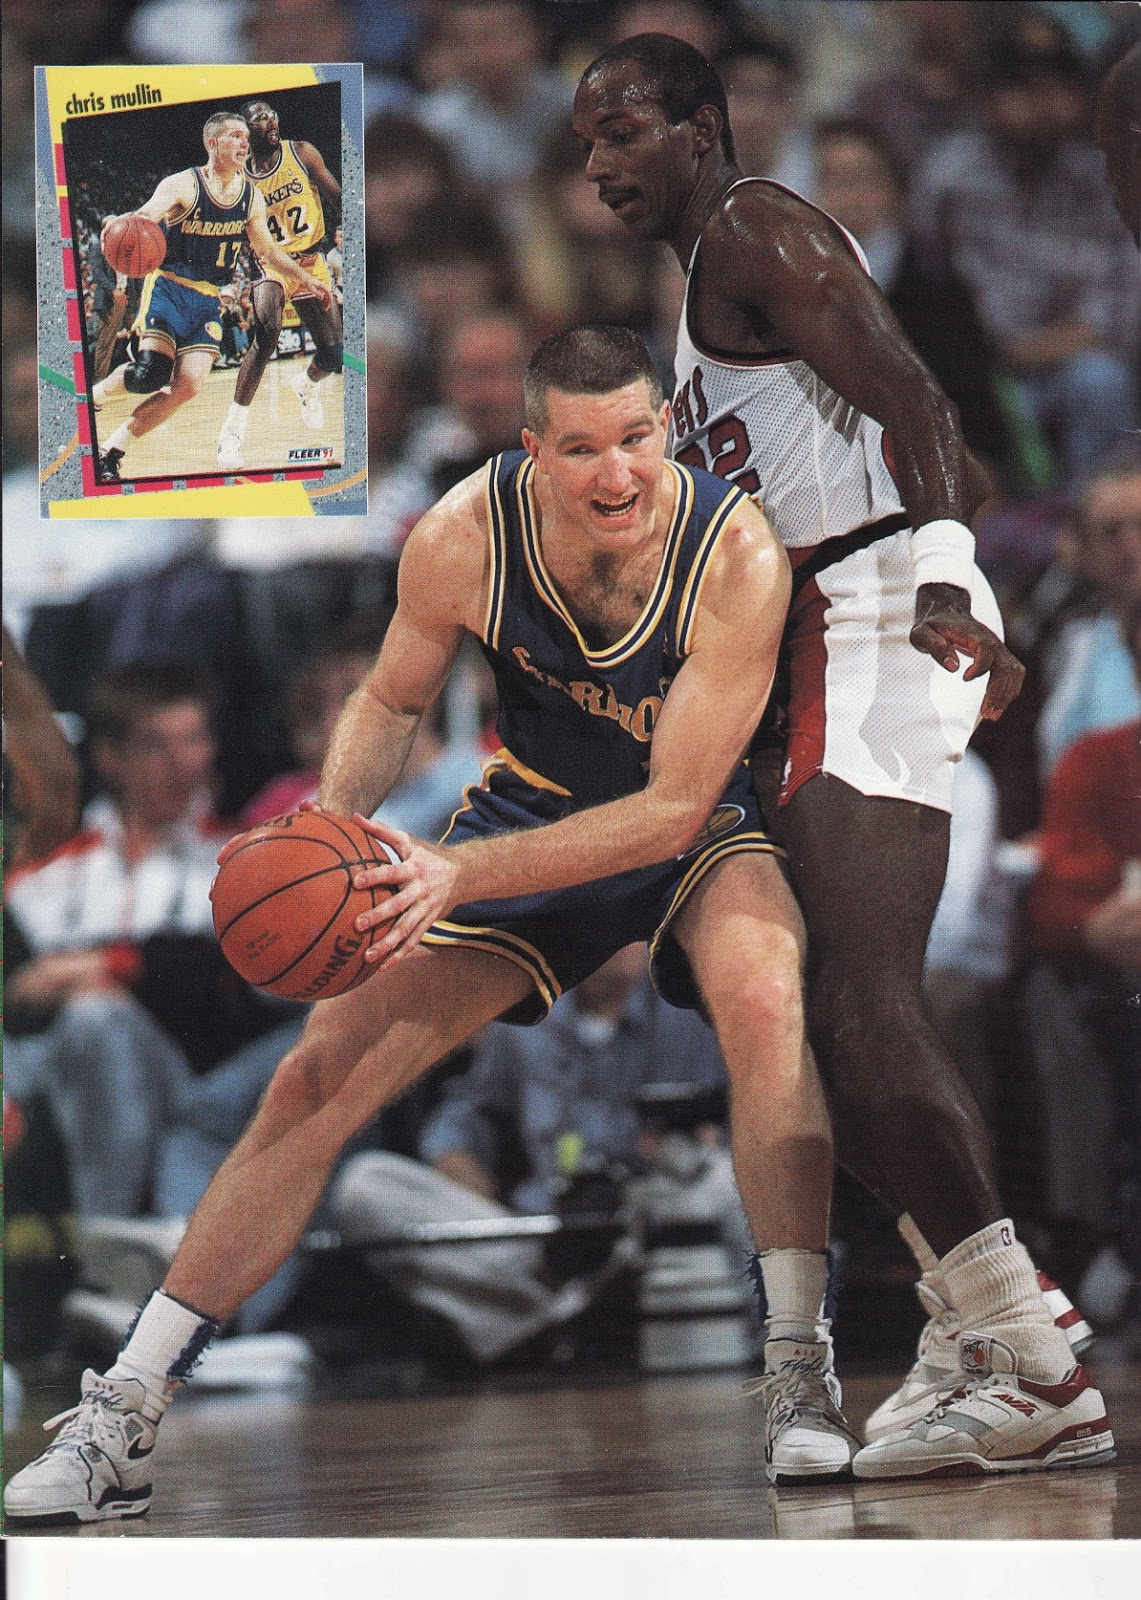 Chris Mullin from Beckett Basketball Monthly